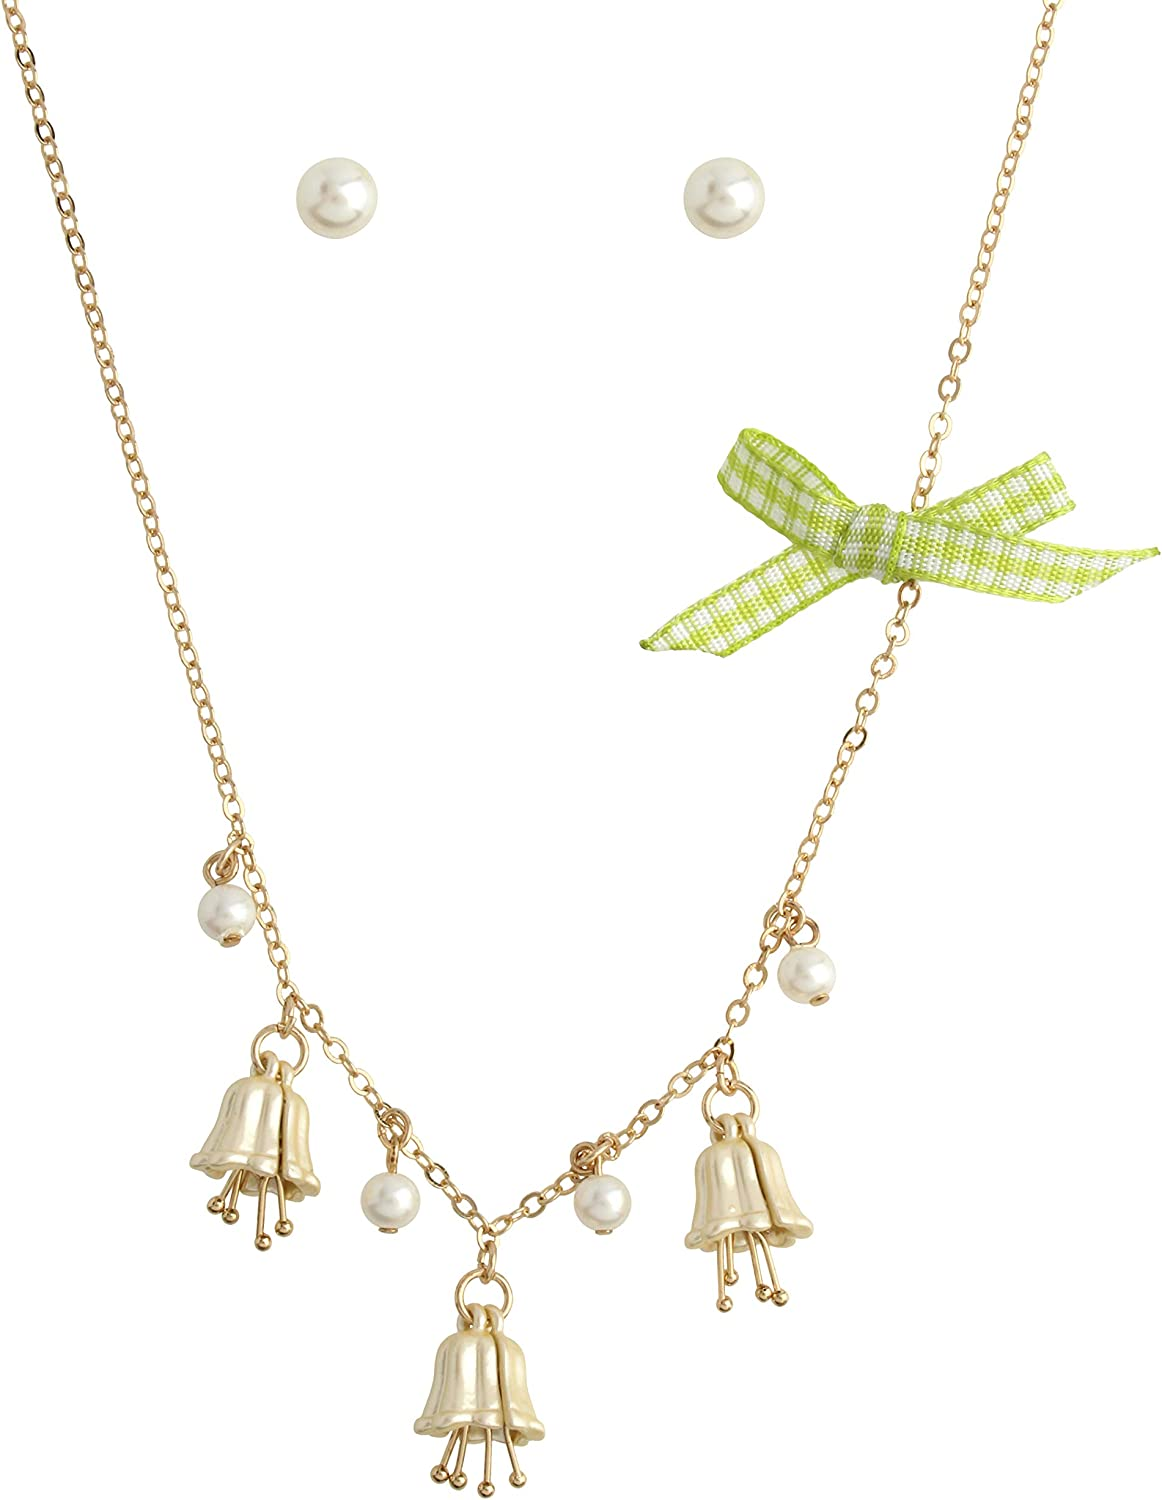 Betsey Johnson Lily Flower Charm Necklace & Pearl Stud Earrings Set